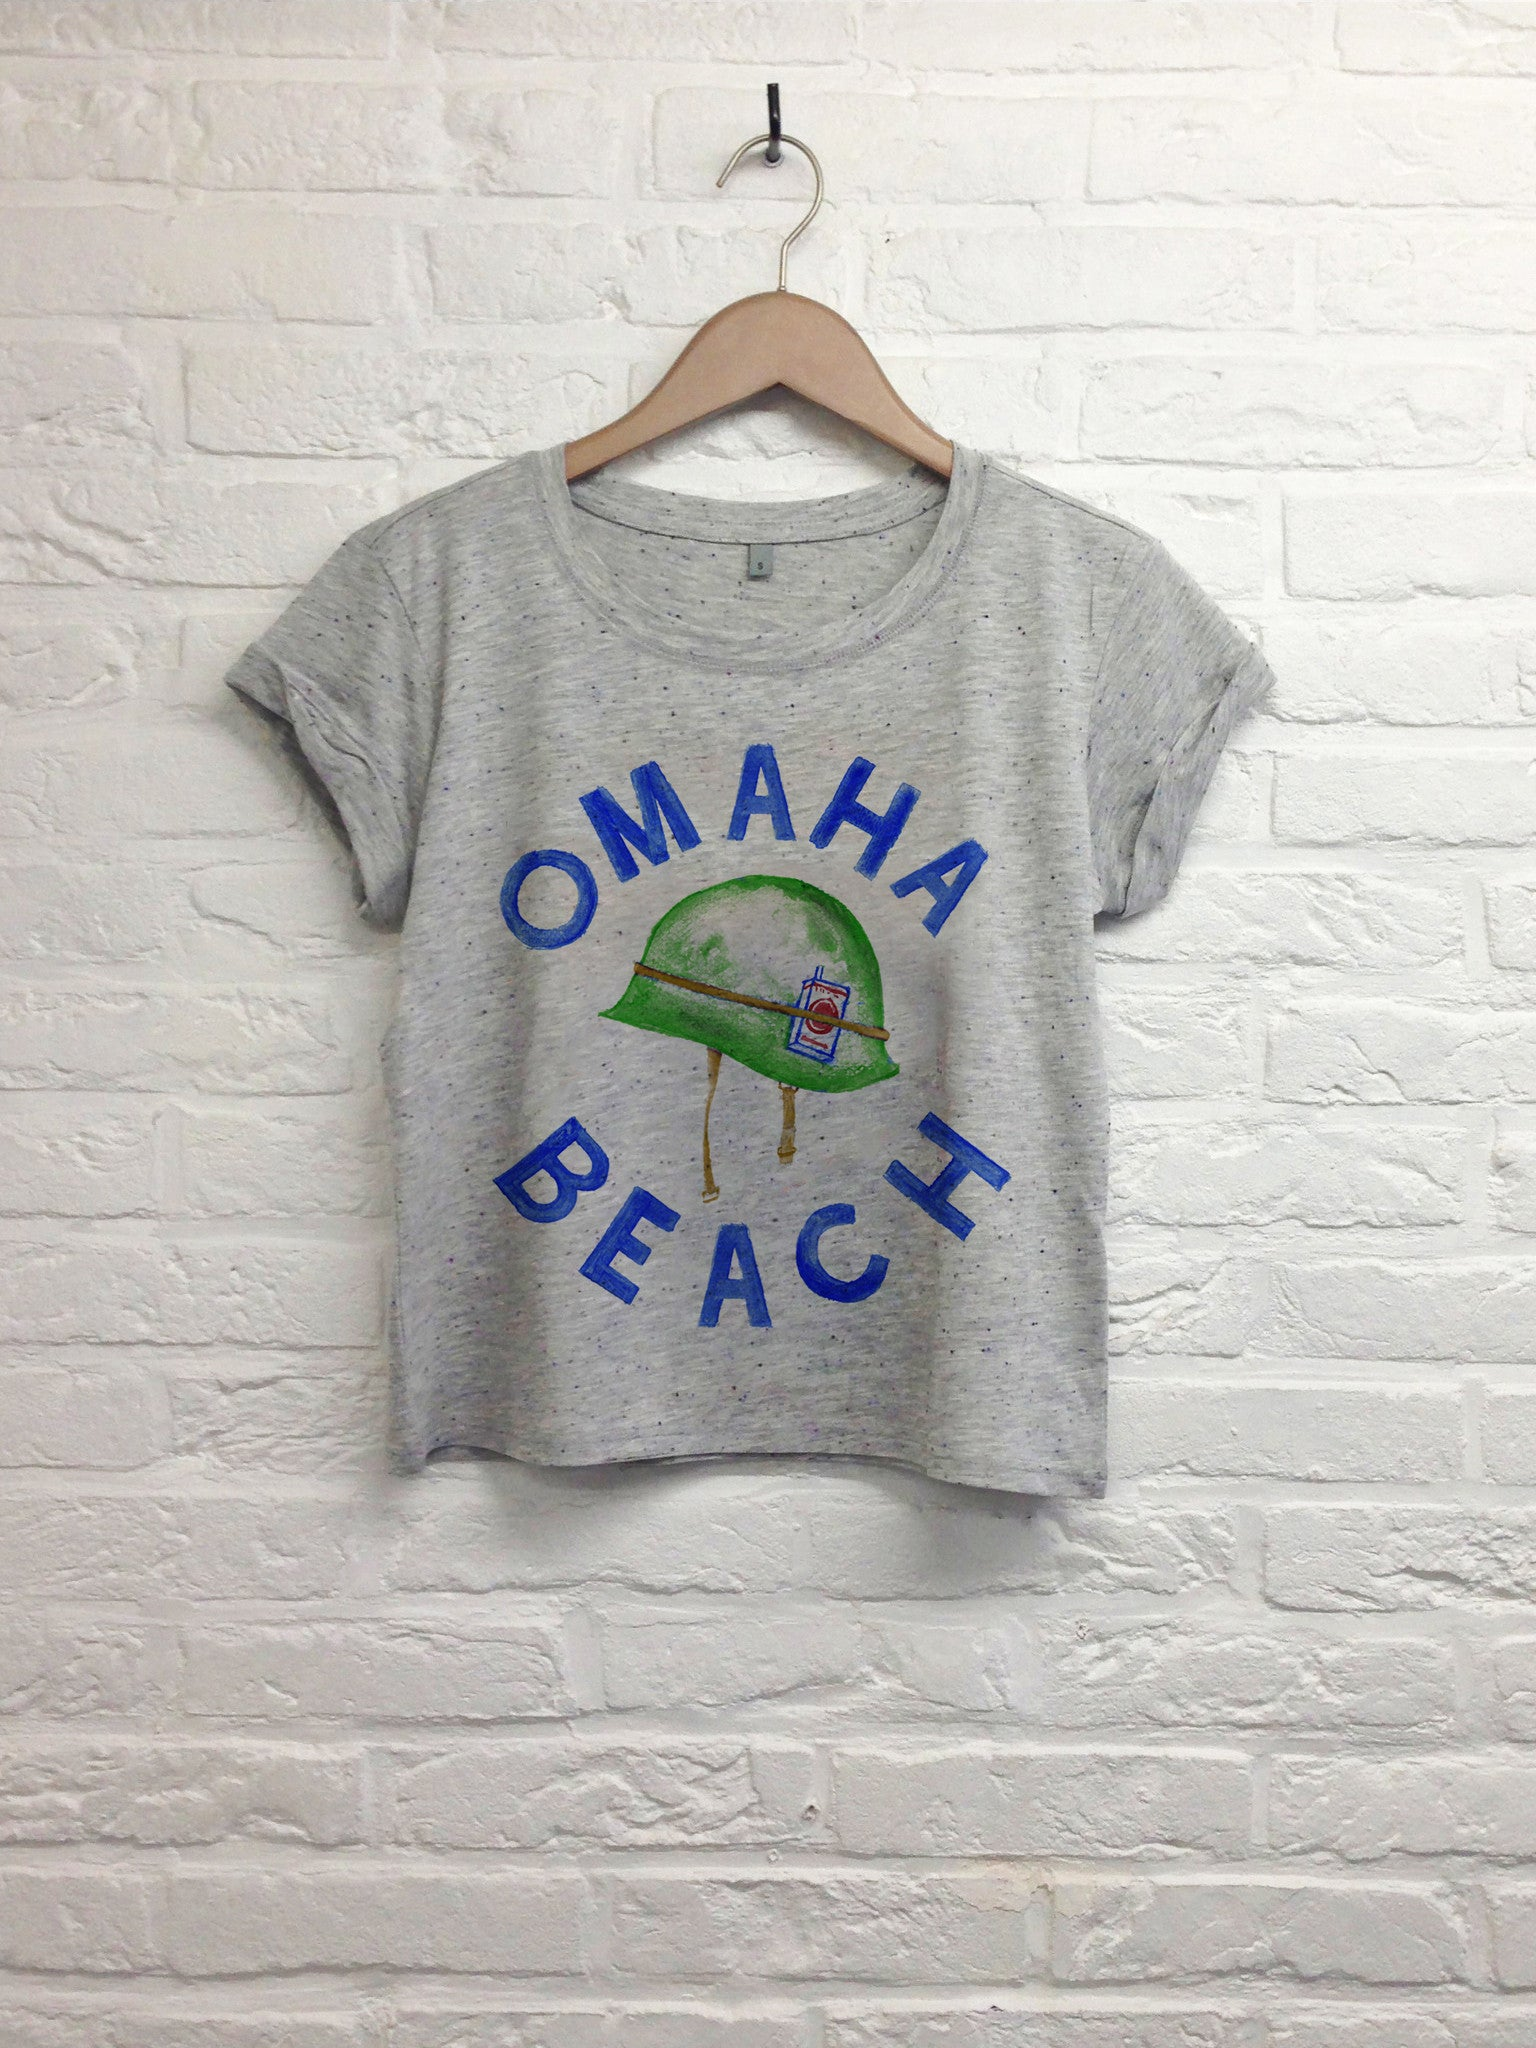 Th gallery - Omaha beach - Crop Top speckled Grey-T shirt-Atelier Amelot